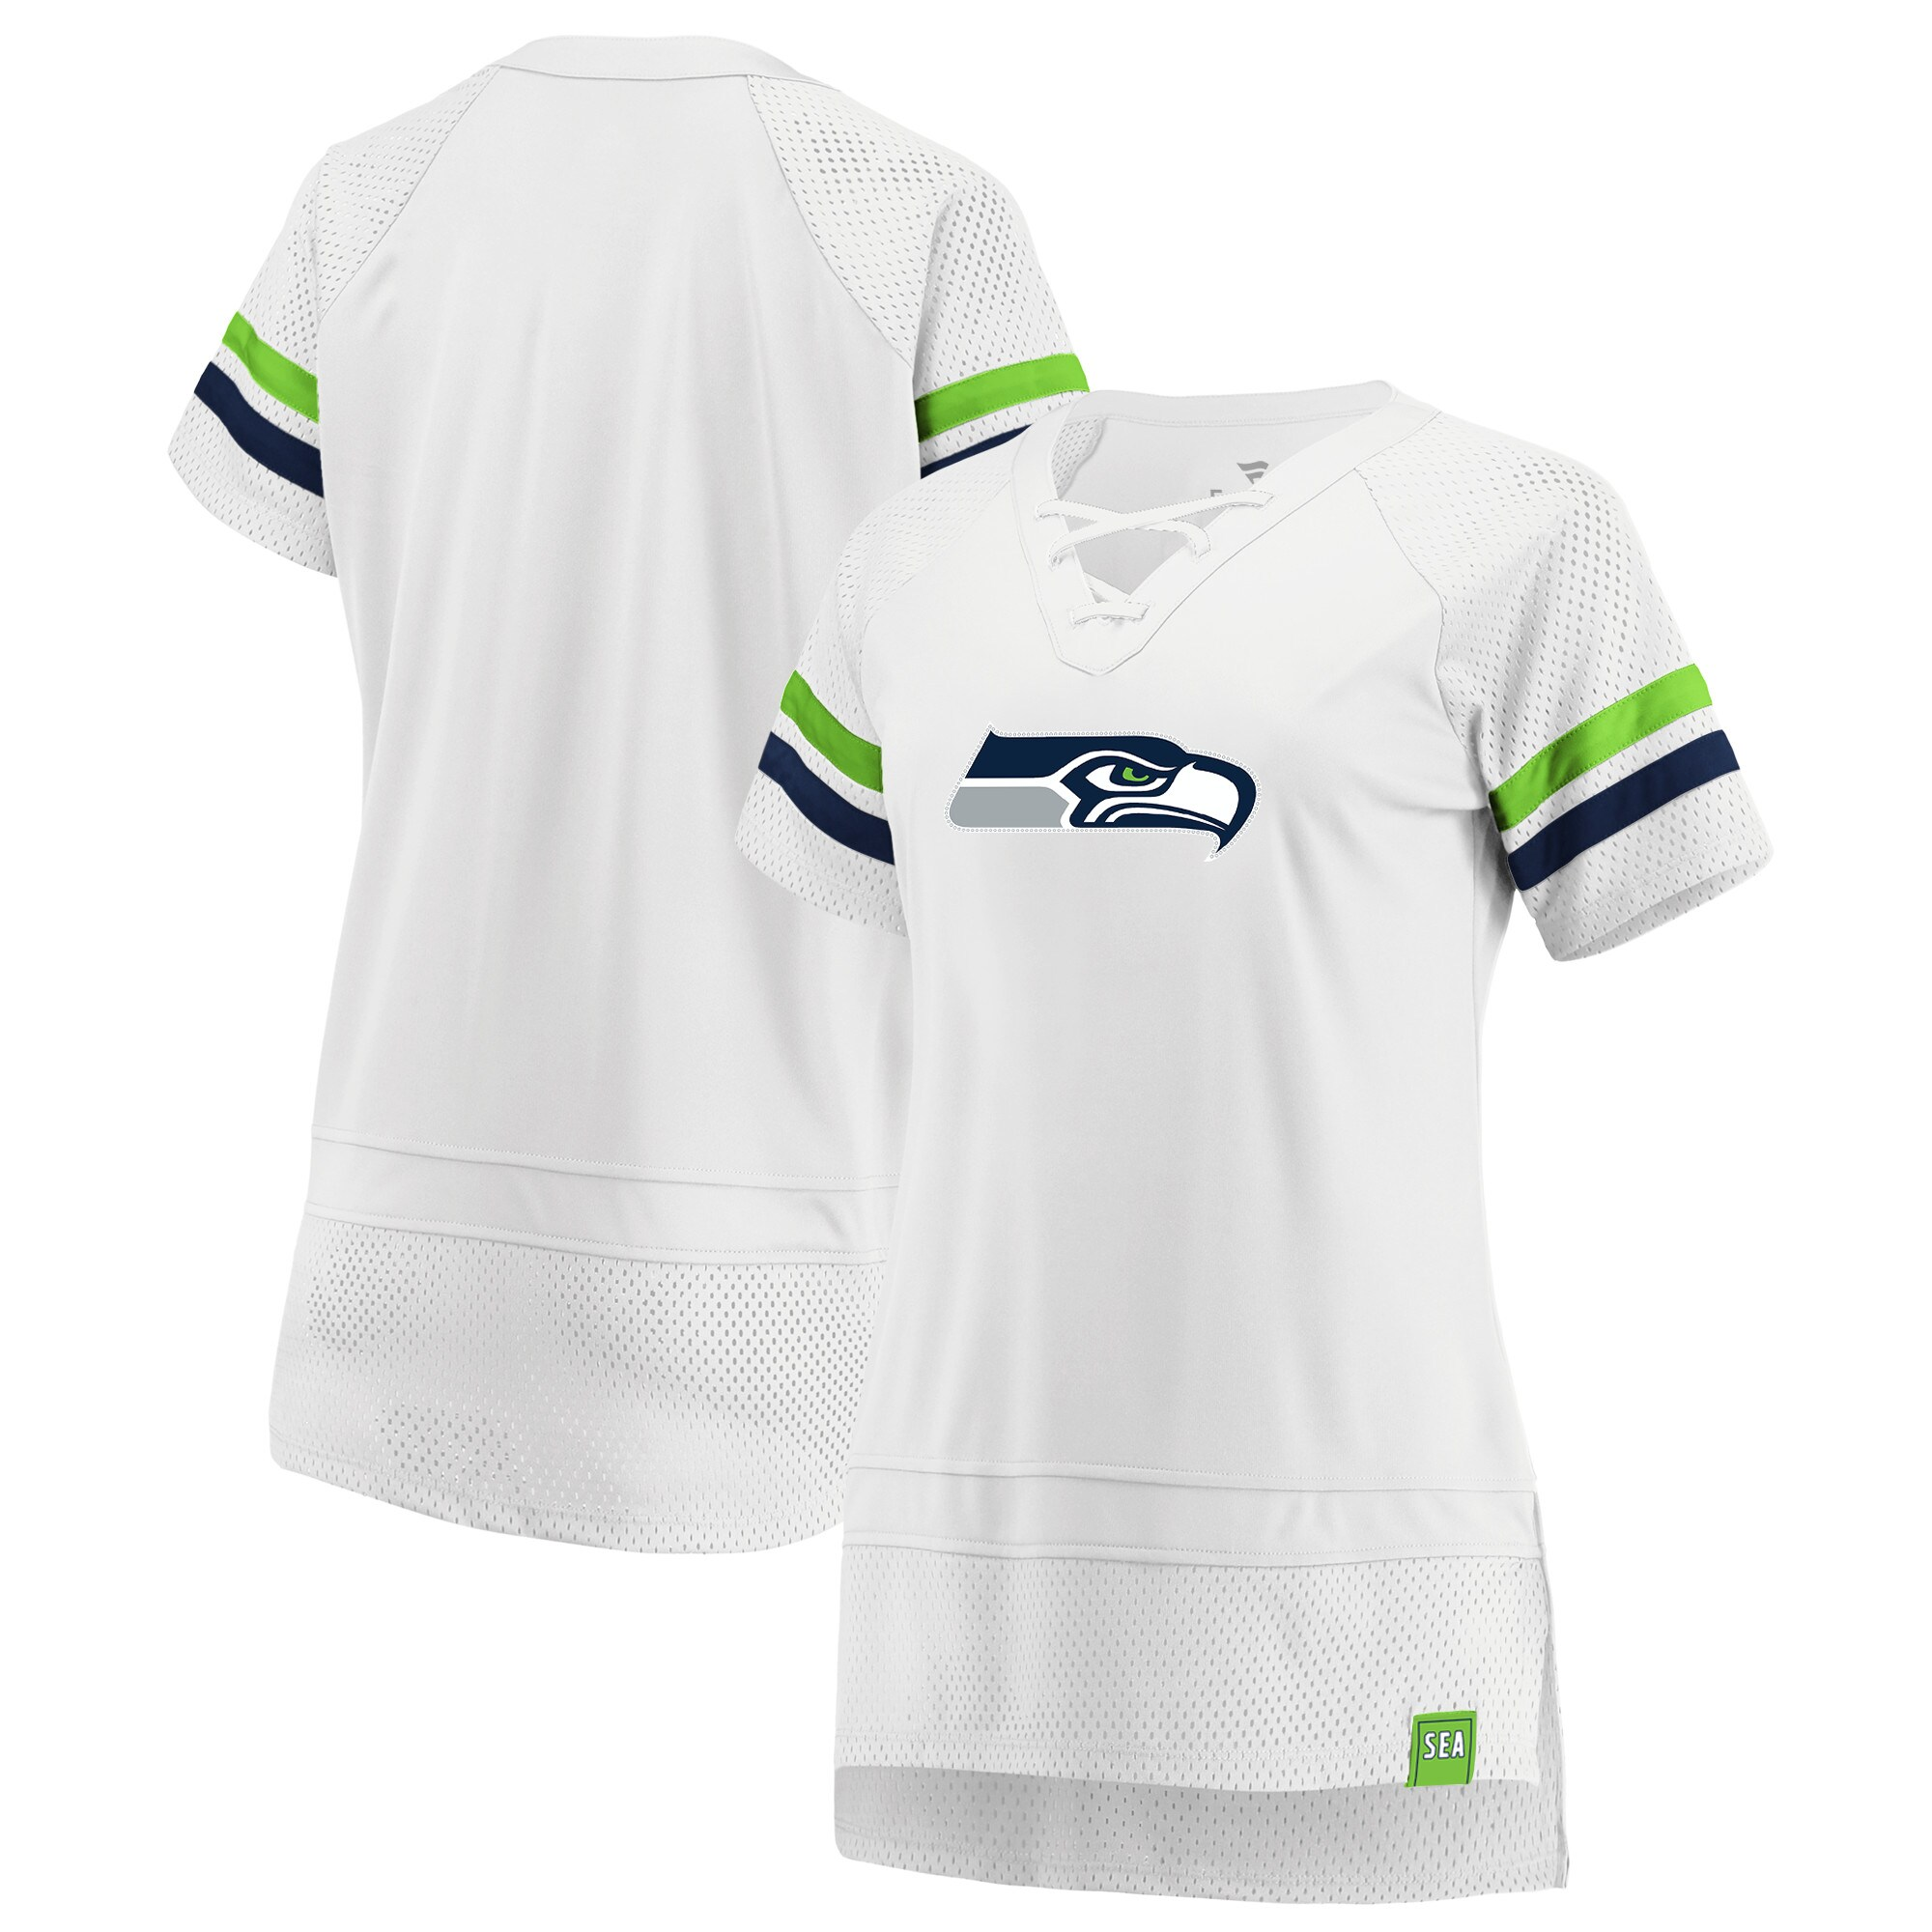 Seattle Seahawks Fanatics Branded Women's Draft Me Lace Up T-Shirt - White/College Navy